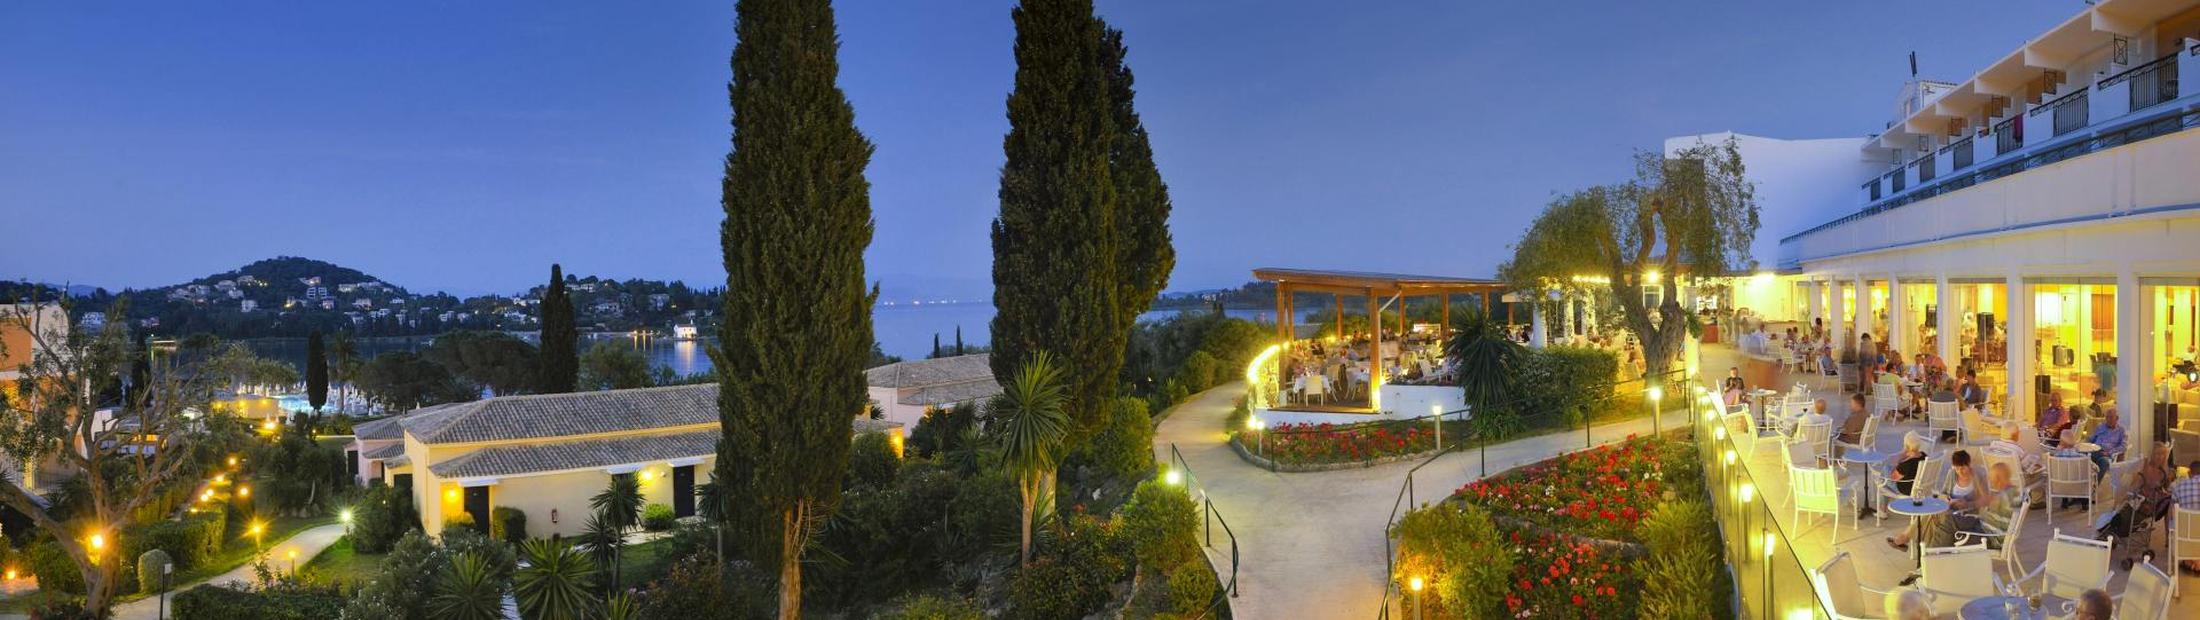 Corcyra Beach Hotel - New incorporation AMResorts ****Corfu, Greece Corcyra Beach Hotel Greece